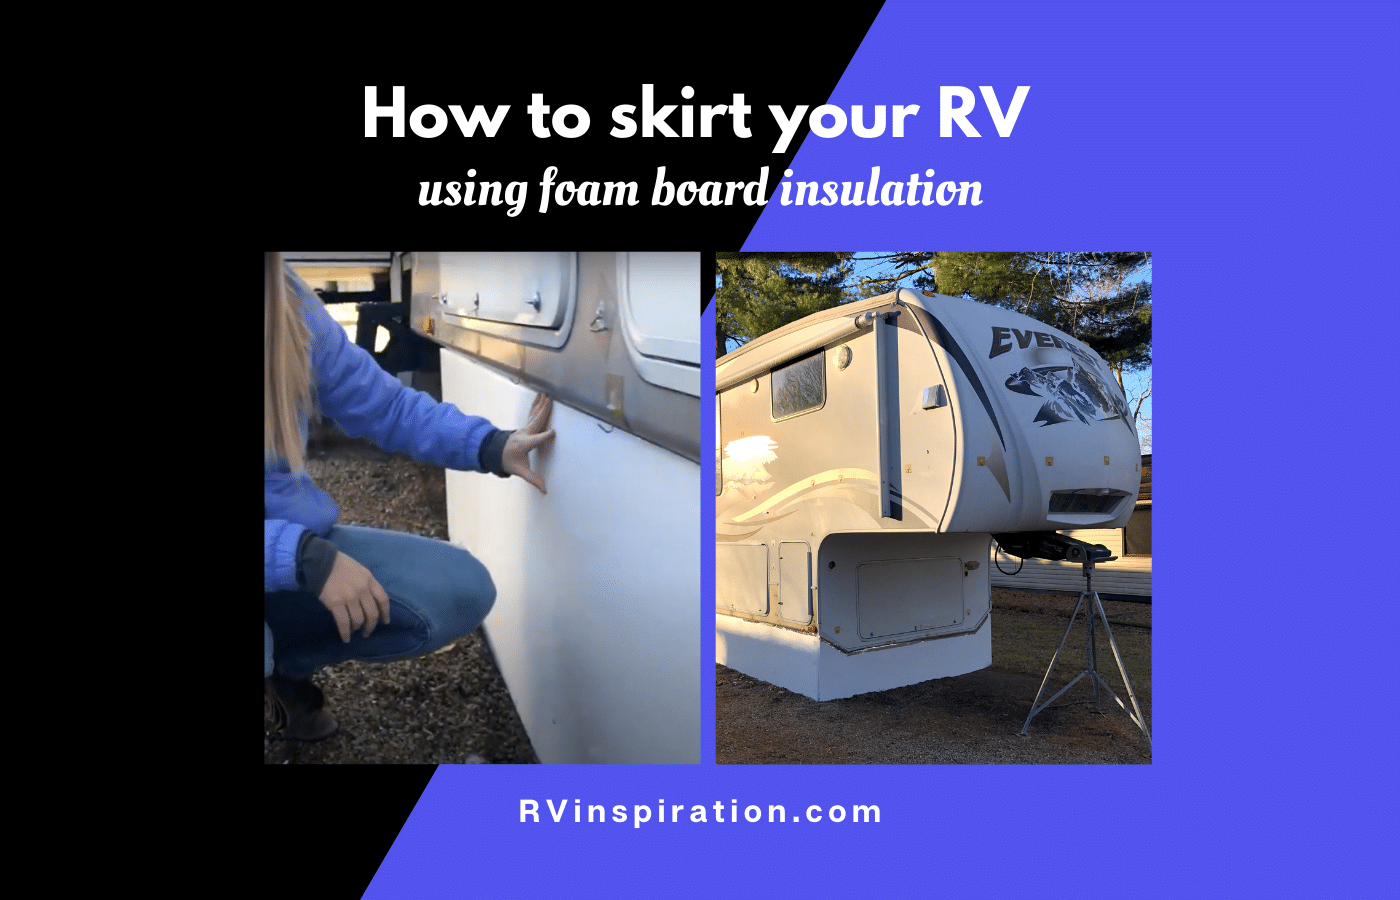 How to skirt a trailer for winter using foam board